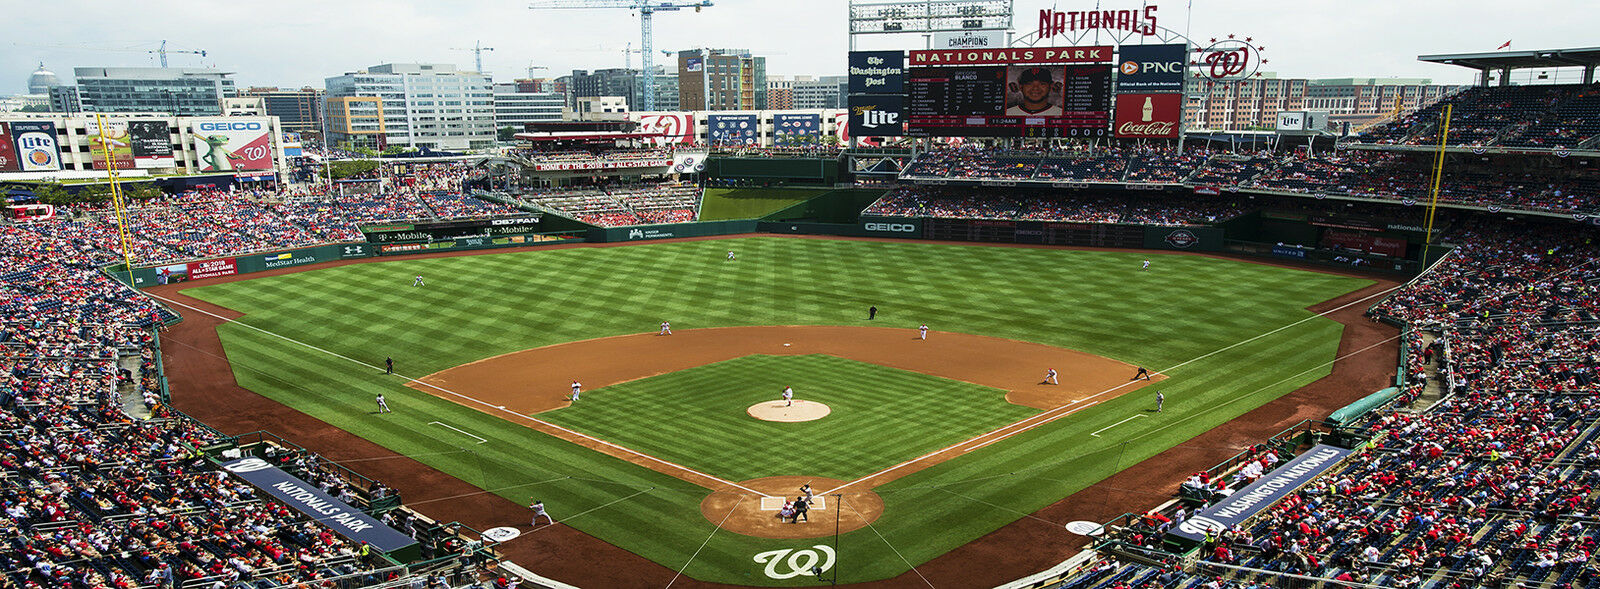 Colorado Rockies at Washington Nationals